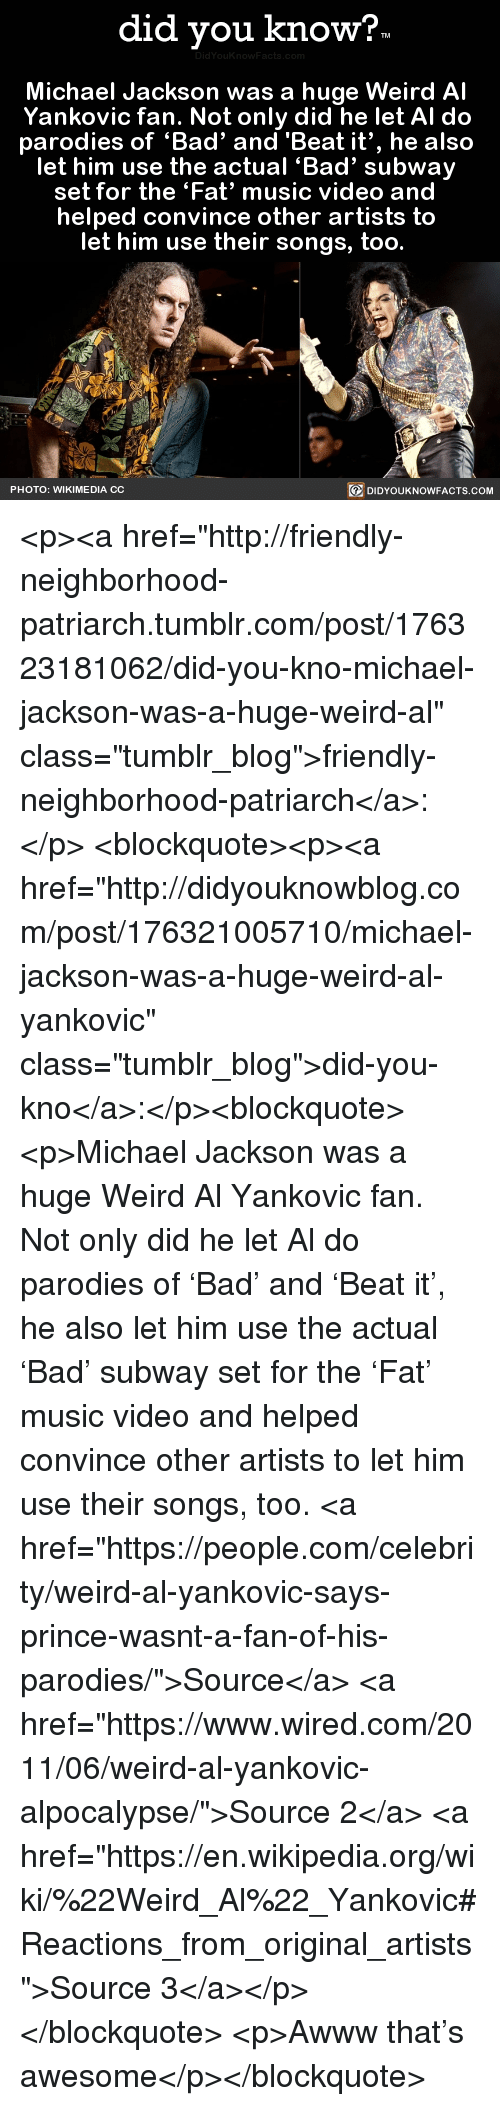 """Bad, Michael Jackson, and Music: did you know?  Michael Jackson was a huge Weird Al  Yankovic fan. Not only did he let AI do  parodies of 'Bad' and  """"Beat it', he also  let him use the actual 'Bad' subway  set for the 'Fat' music video and  helped convince other artists to  let him use their songs, too.  PHOTO: WIKIMEDIA CC  回DIDYOUKNOWFACTS.COM <p><a href=""""http://friendly-neighborhood-patriarch.tumblr.com/post/176323181062/did-you-kno-michael-jackson-was-a-huge-weird-al"""" class=""""tumblr_blog"""">friendly-neighborhood-patriarch</a>:</p>  <blockquote><p><a href=""""http://didyouknowblog.com/post/176321005710/michael-jackson-was-a-huge-weird-al-yankovic"""" class=""""tumblr_blog"""">did-you-kno</a>:</p><blockquote><p>Michael Jackson was a huge Weird Al   Yankovic fan. Not only did he let Al do  parodies of 'Bad' and 'Beat it', he also   let him use the actual 'Bad' subway   set for the 'Fat' music video and   helped convince other artists to   let him use their songs, too.     <a href=""""https://people.com/celebrity/weird-al-yankovic-says-prince-wasnt-a-fan-of-his-parodies/"""">Source</a> <a href=""""https://www.wired.com/2011/06/weird-al-yankovic-alpocalypse/"""">Source 2</a> <a href=""""https://en.wikipedia.org/wiki/%22Weird_Al%22_Yankovic#Reactions_from_original_artists"""">Source 3</a></p></blockquote>  <p>Awww that's awesome</p></blockquote>"""